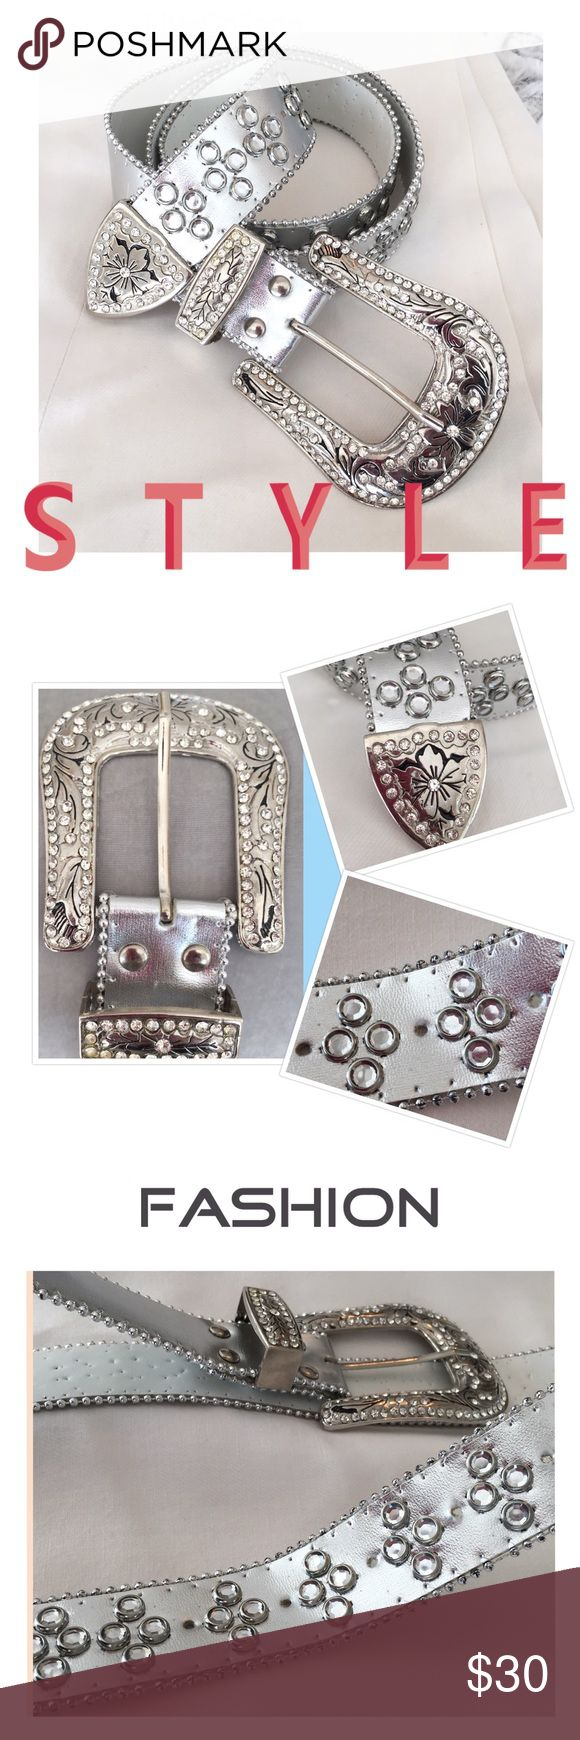 "Rhinestone Silver Belt Silver rhinestone belt,  1 1/2"" wide belt. Big 3 1/2"" x 3"" stone studded buckle with matching keeper and belt tip. Rhinestones and studs along the silver with nickel beaded edge , 5 belt holes for extended fitting. Measures 44"" in length including the buckle, without the buckle its 41"" in length.  Brand New, Without tags Accessories Belts"